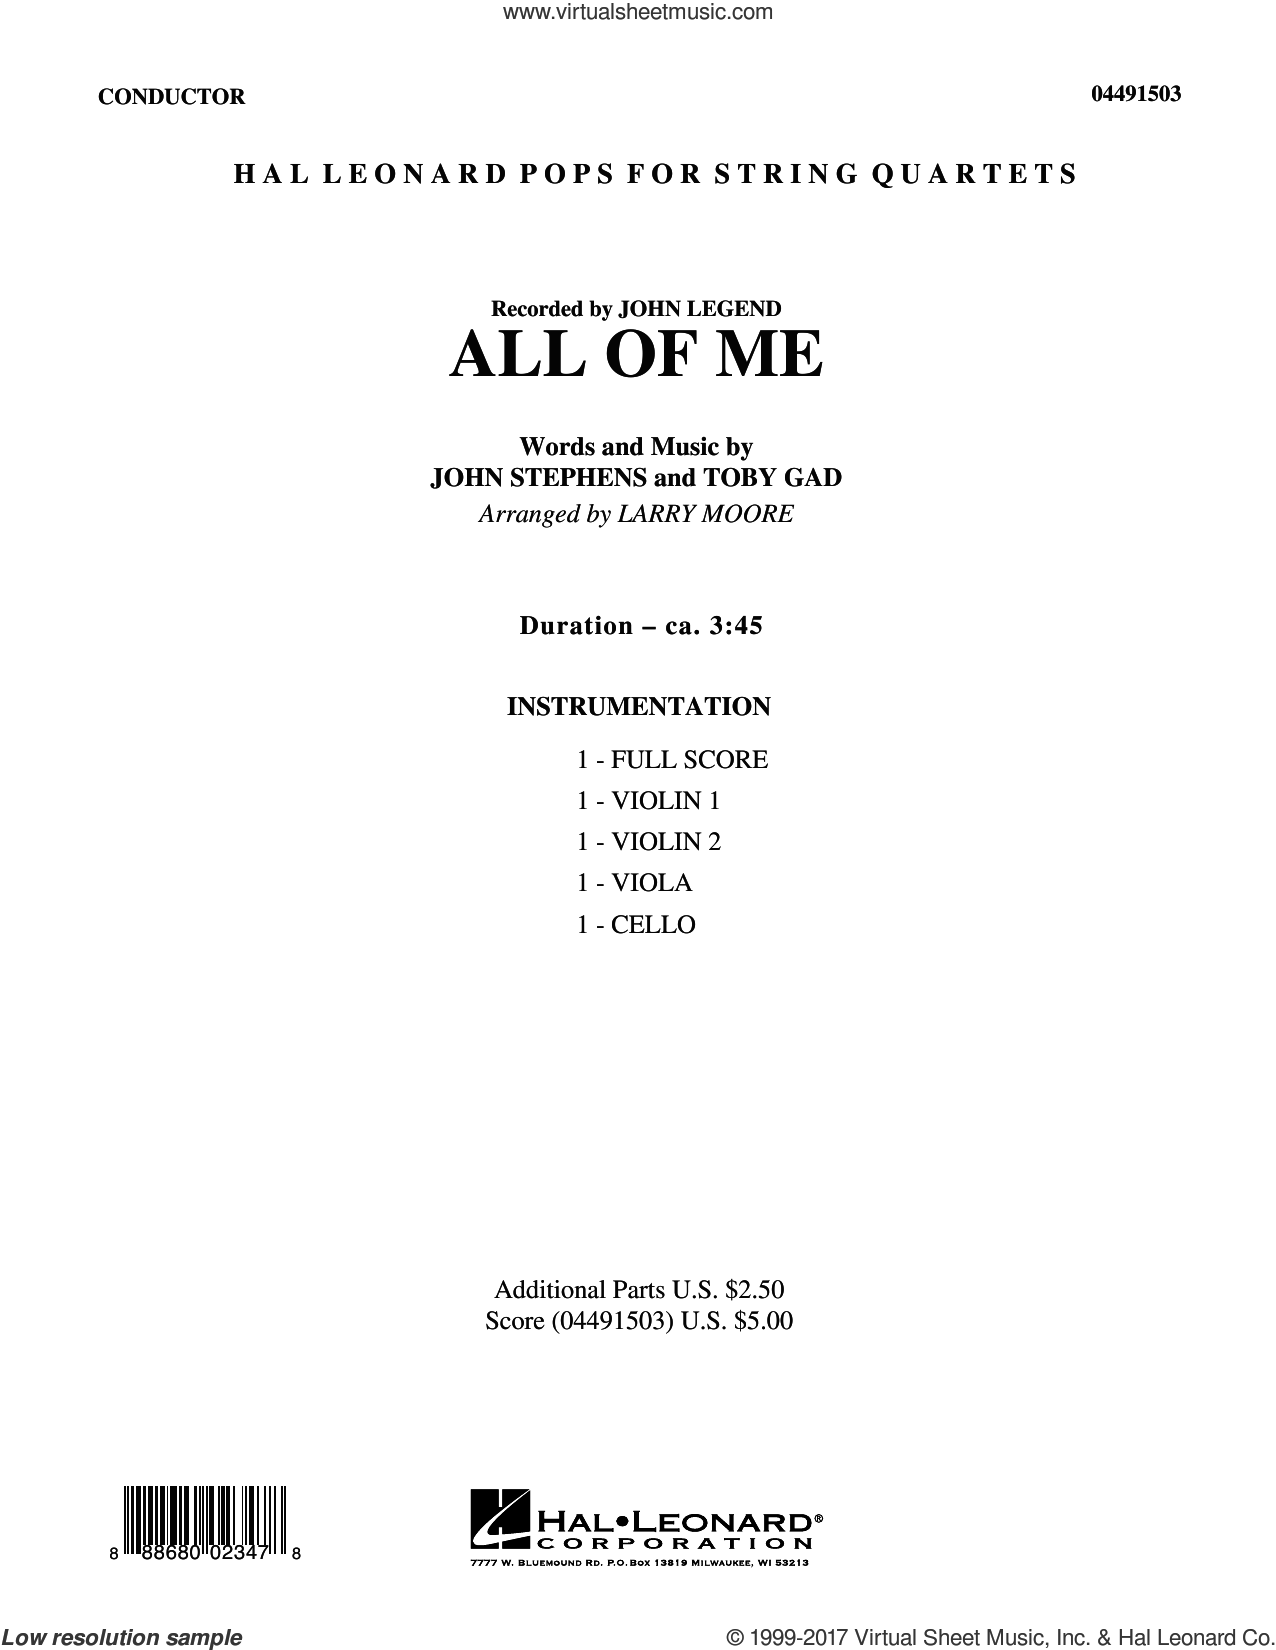 All of Me (COMPLETE) sheet music for orchestra by Larry Moore, John Legend, John Stephens, John Stevens and Toby Gad, wedding score, intermediate skill level